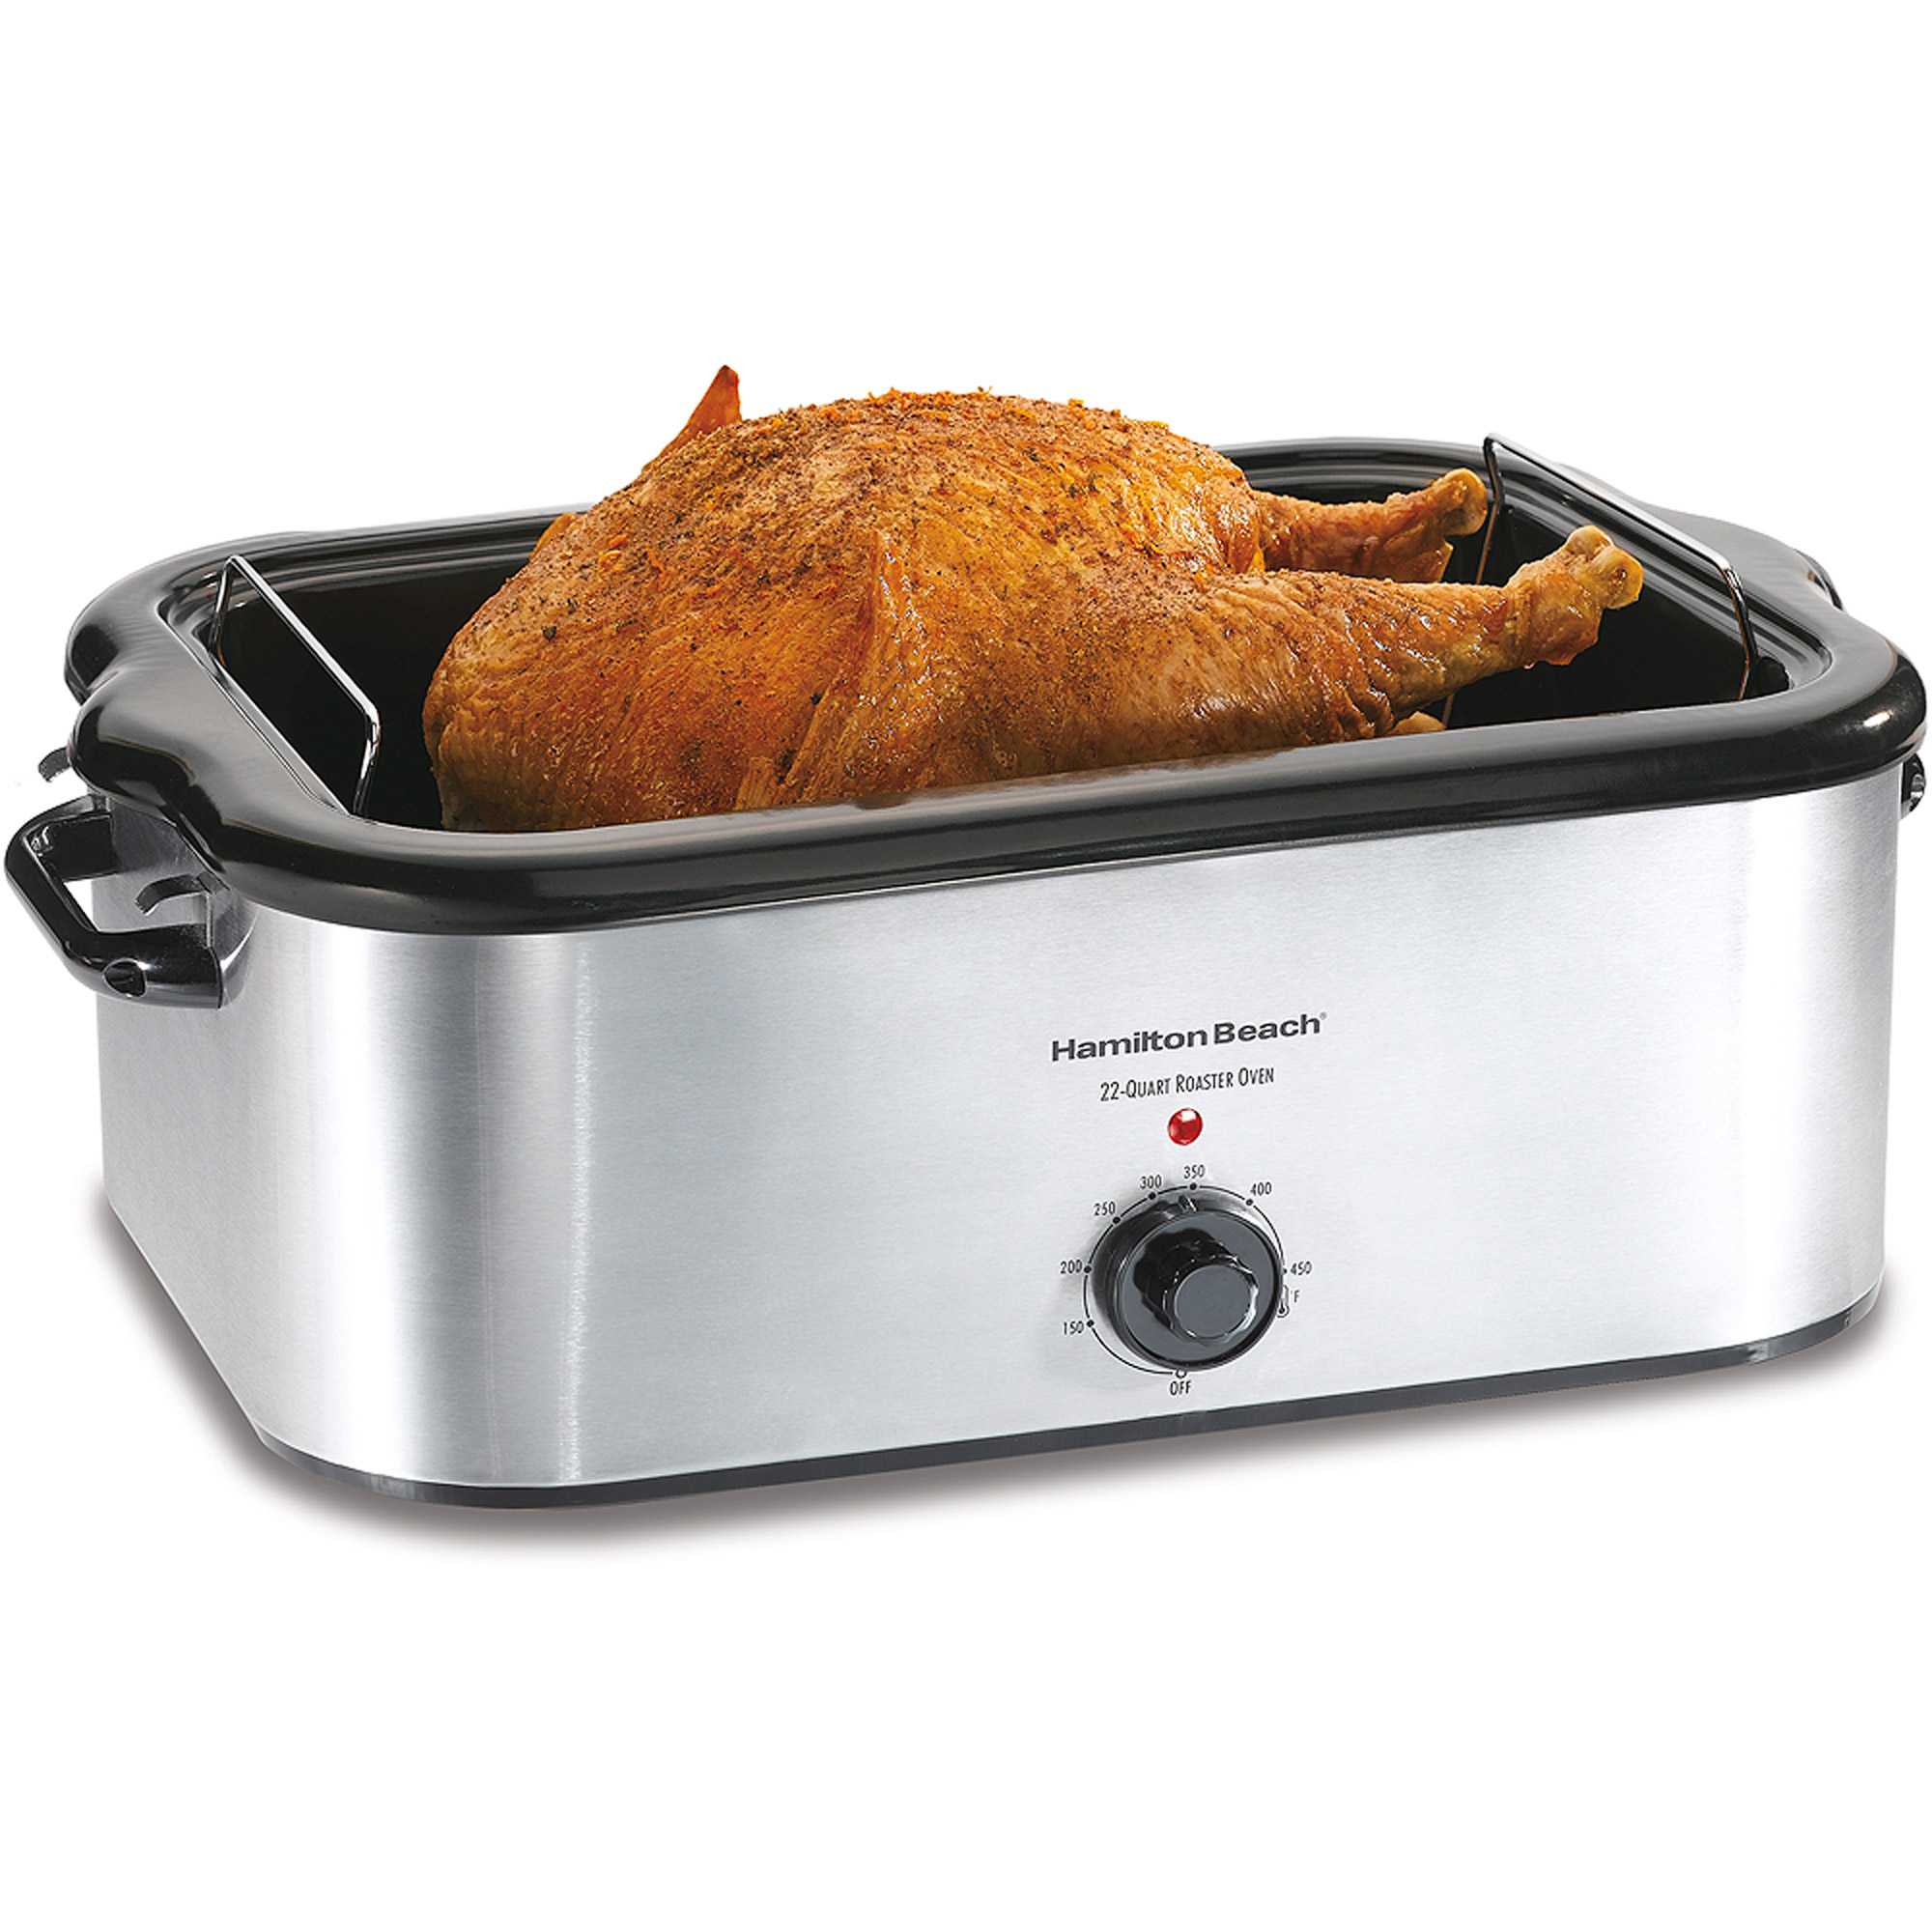 Hamilton Beach 24-Pound Turkey Roaster Oven, 22 Quart Capacity - Stainless Steel